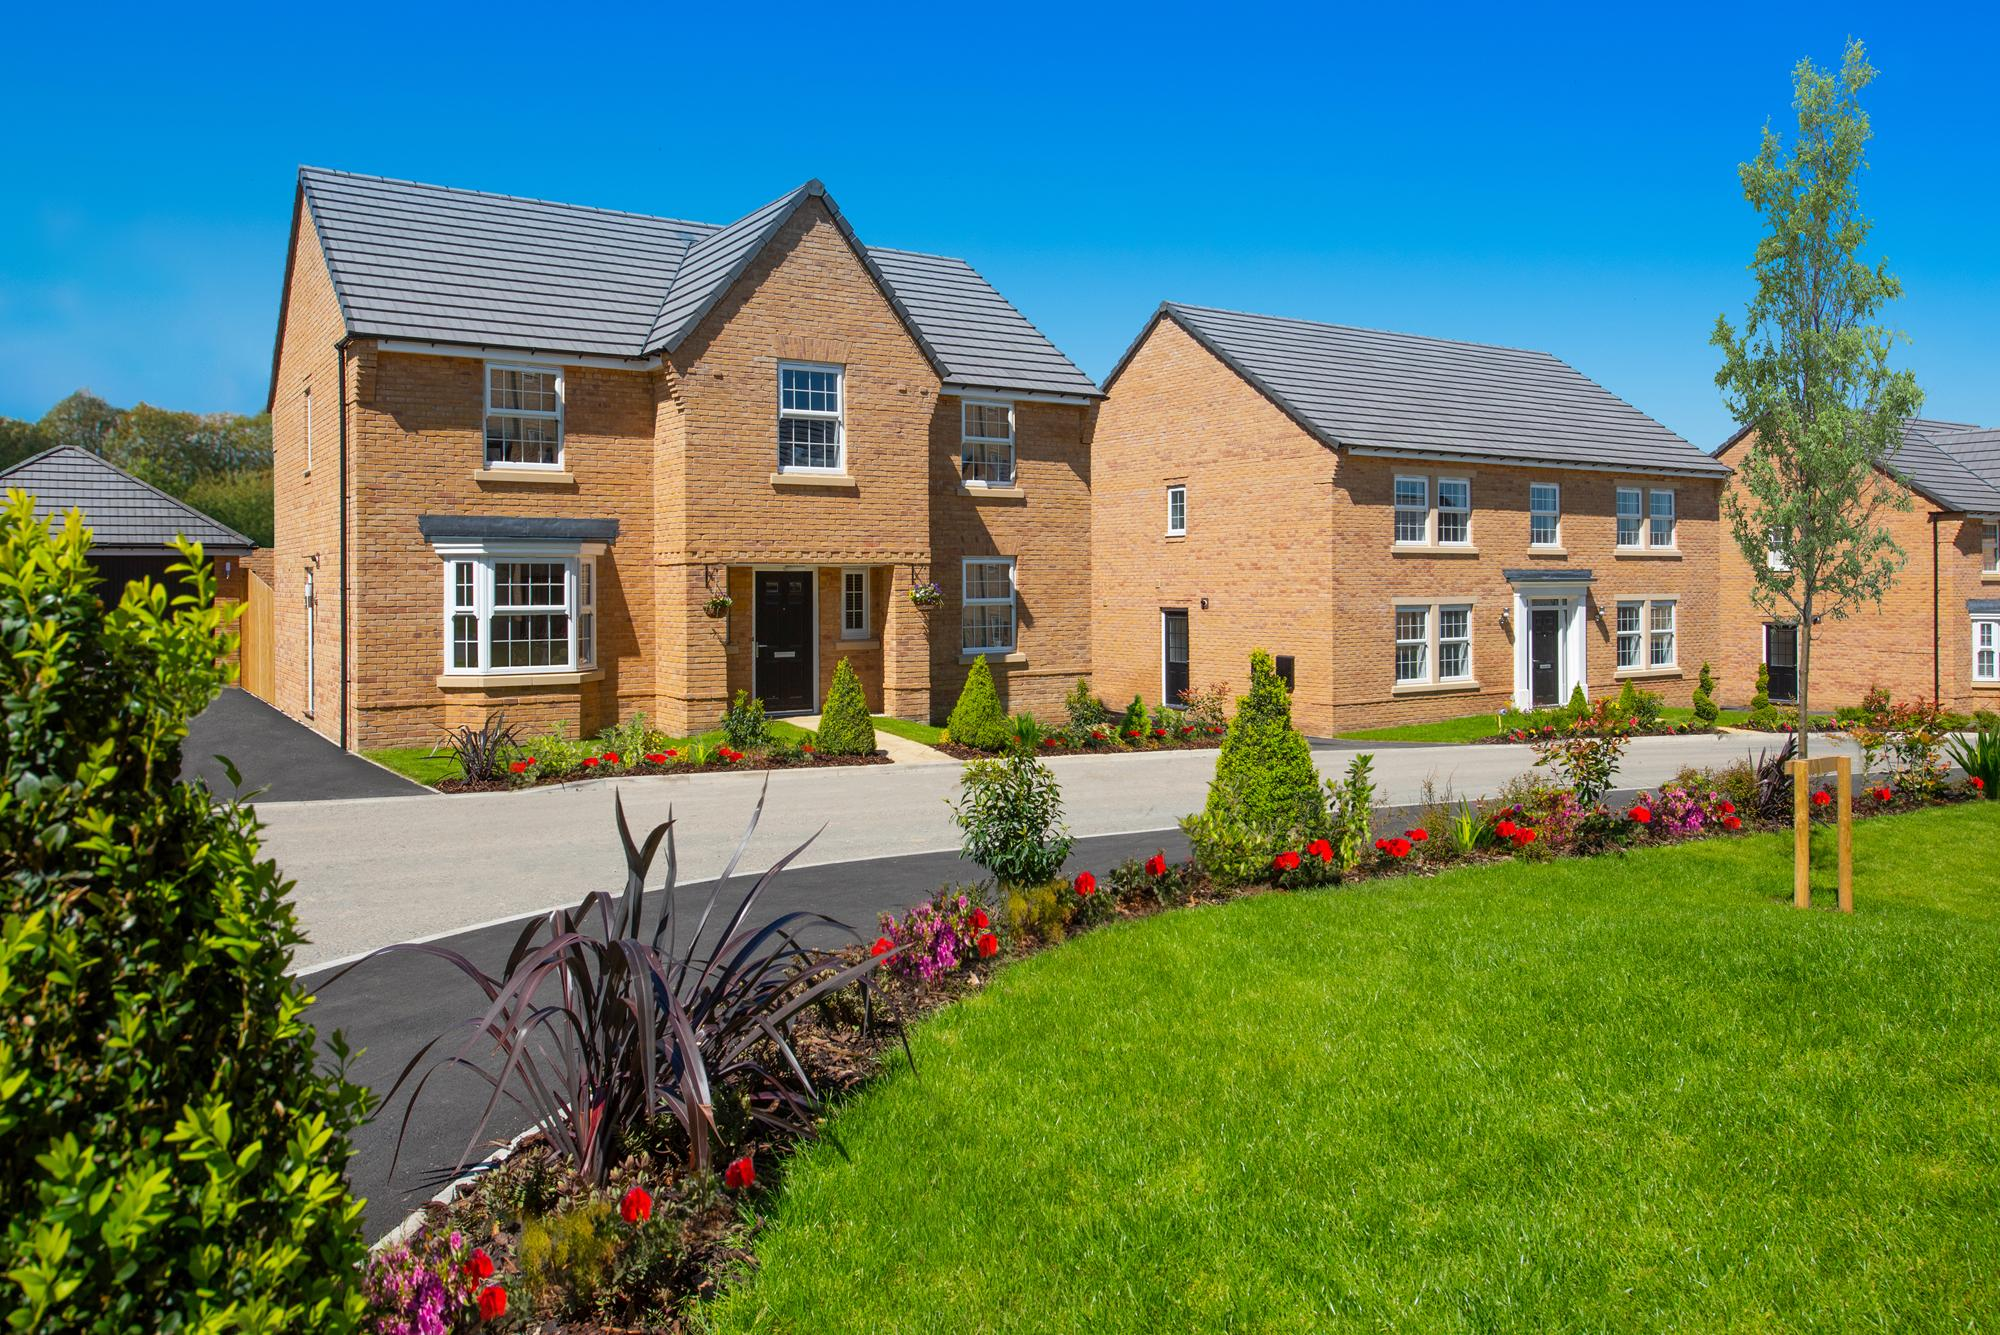 New Build Homes in Hampsthwaite